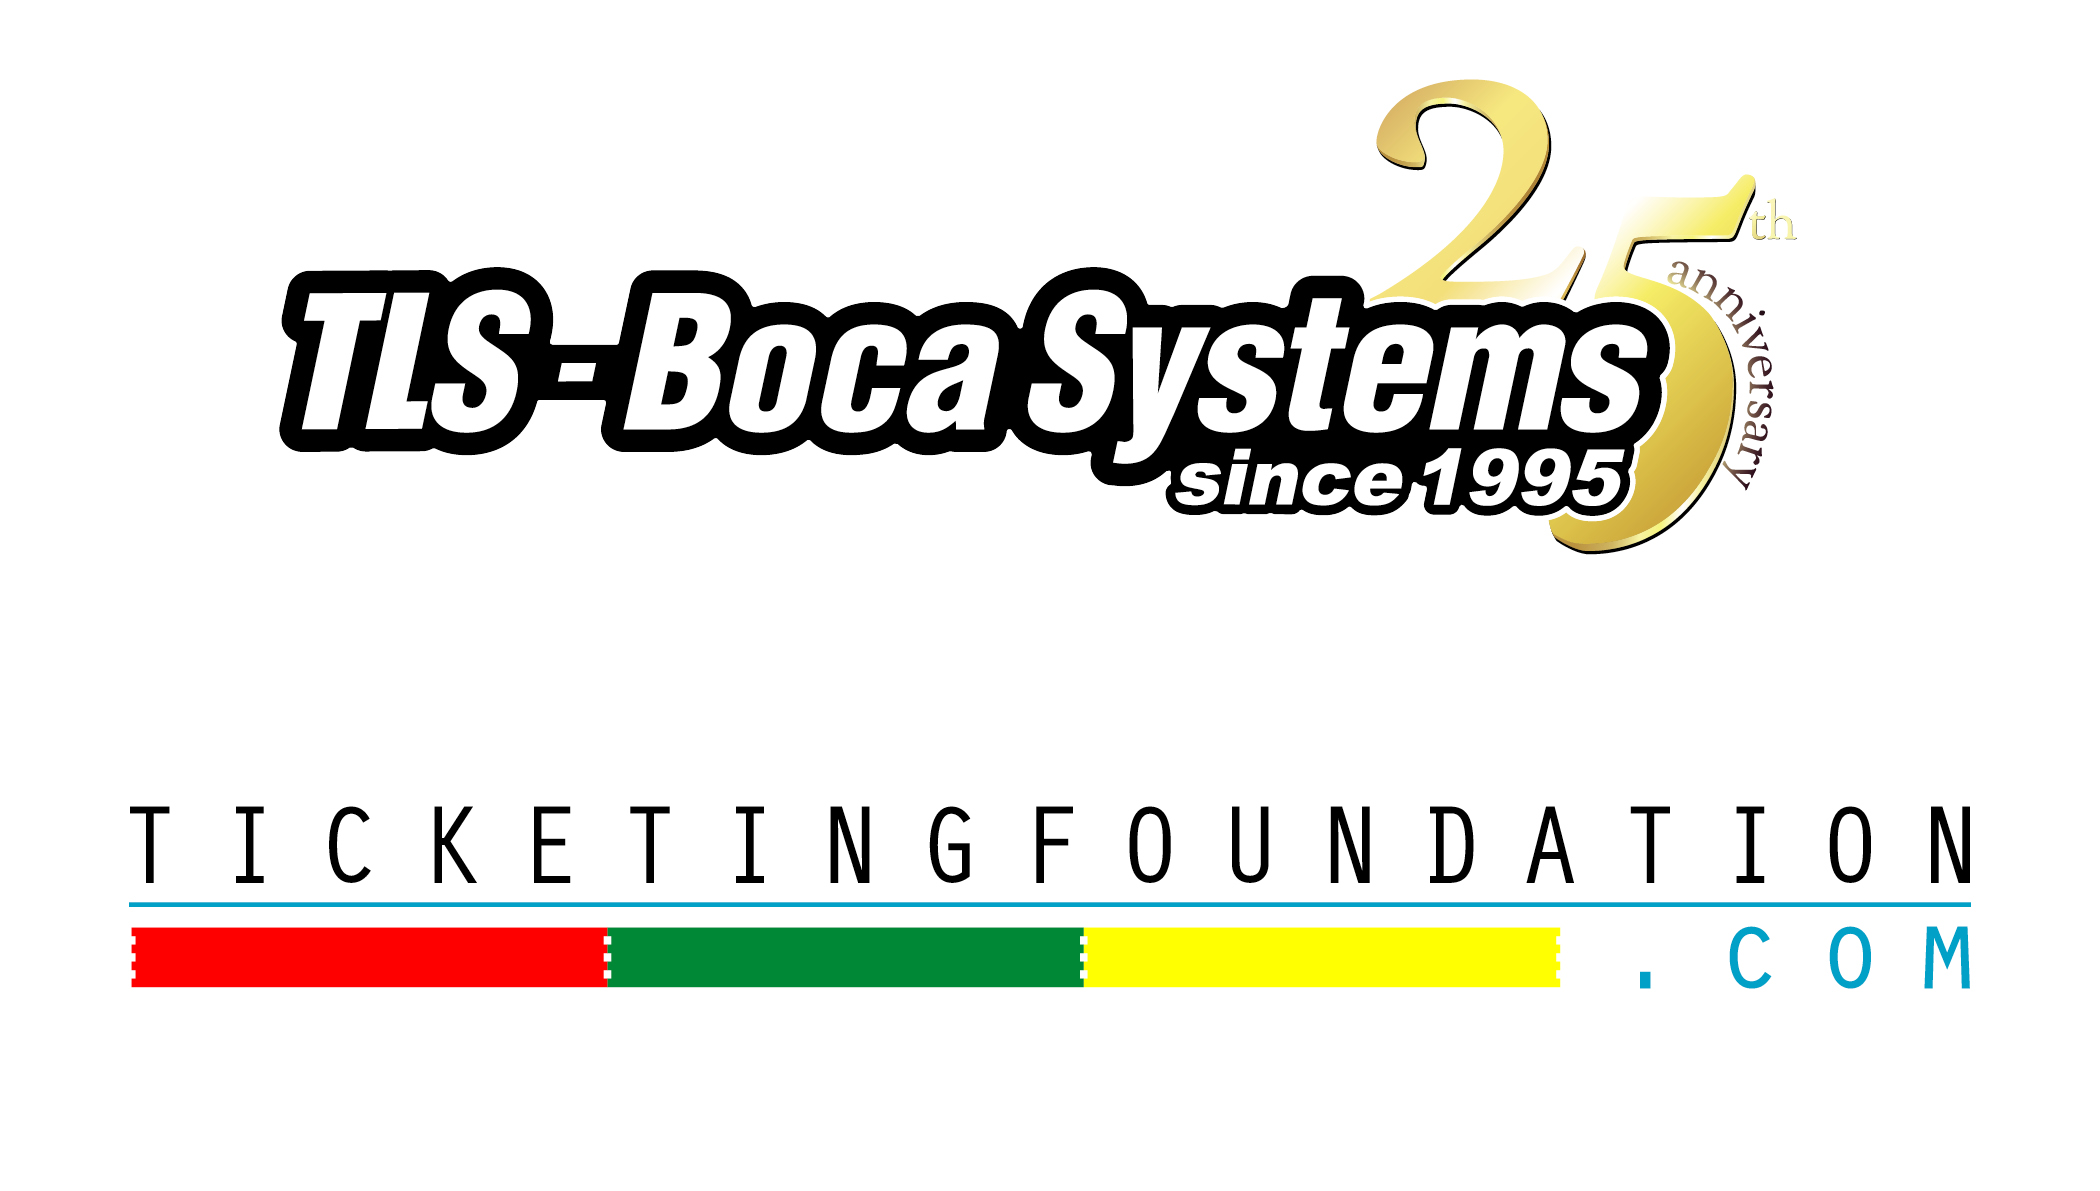 25 years of TLS - Boca Systems. Welcome TicketingFoundation!